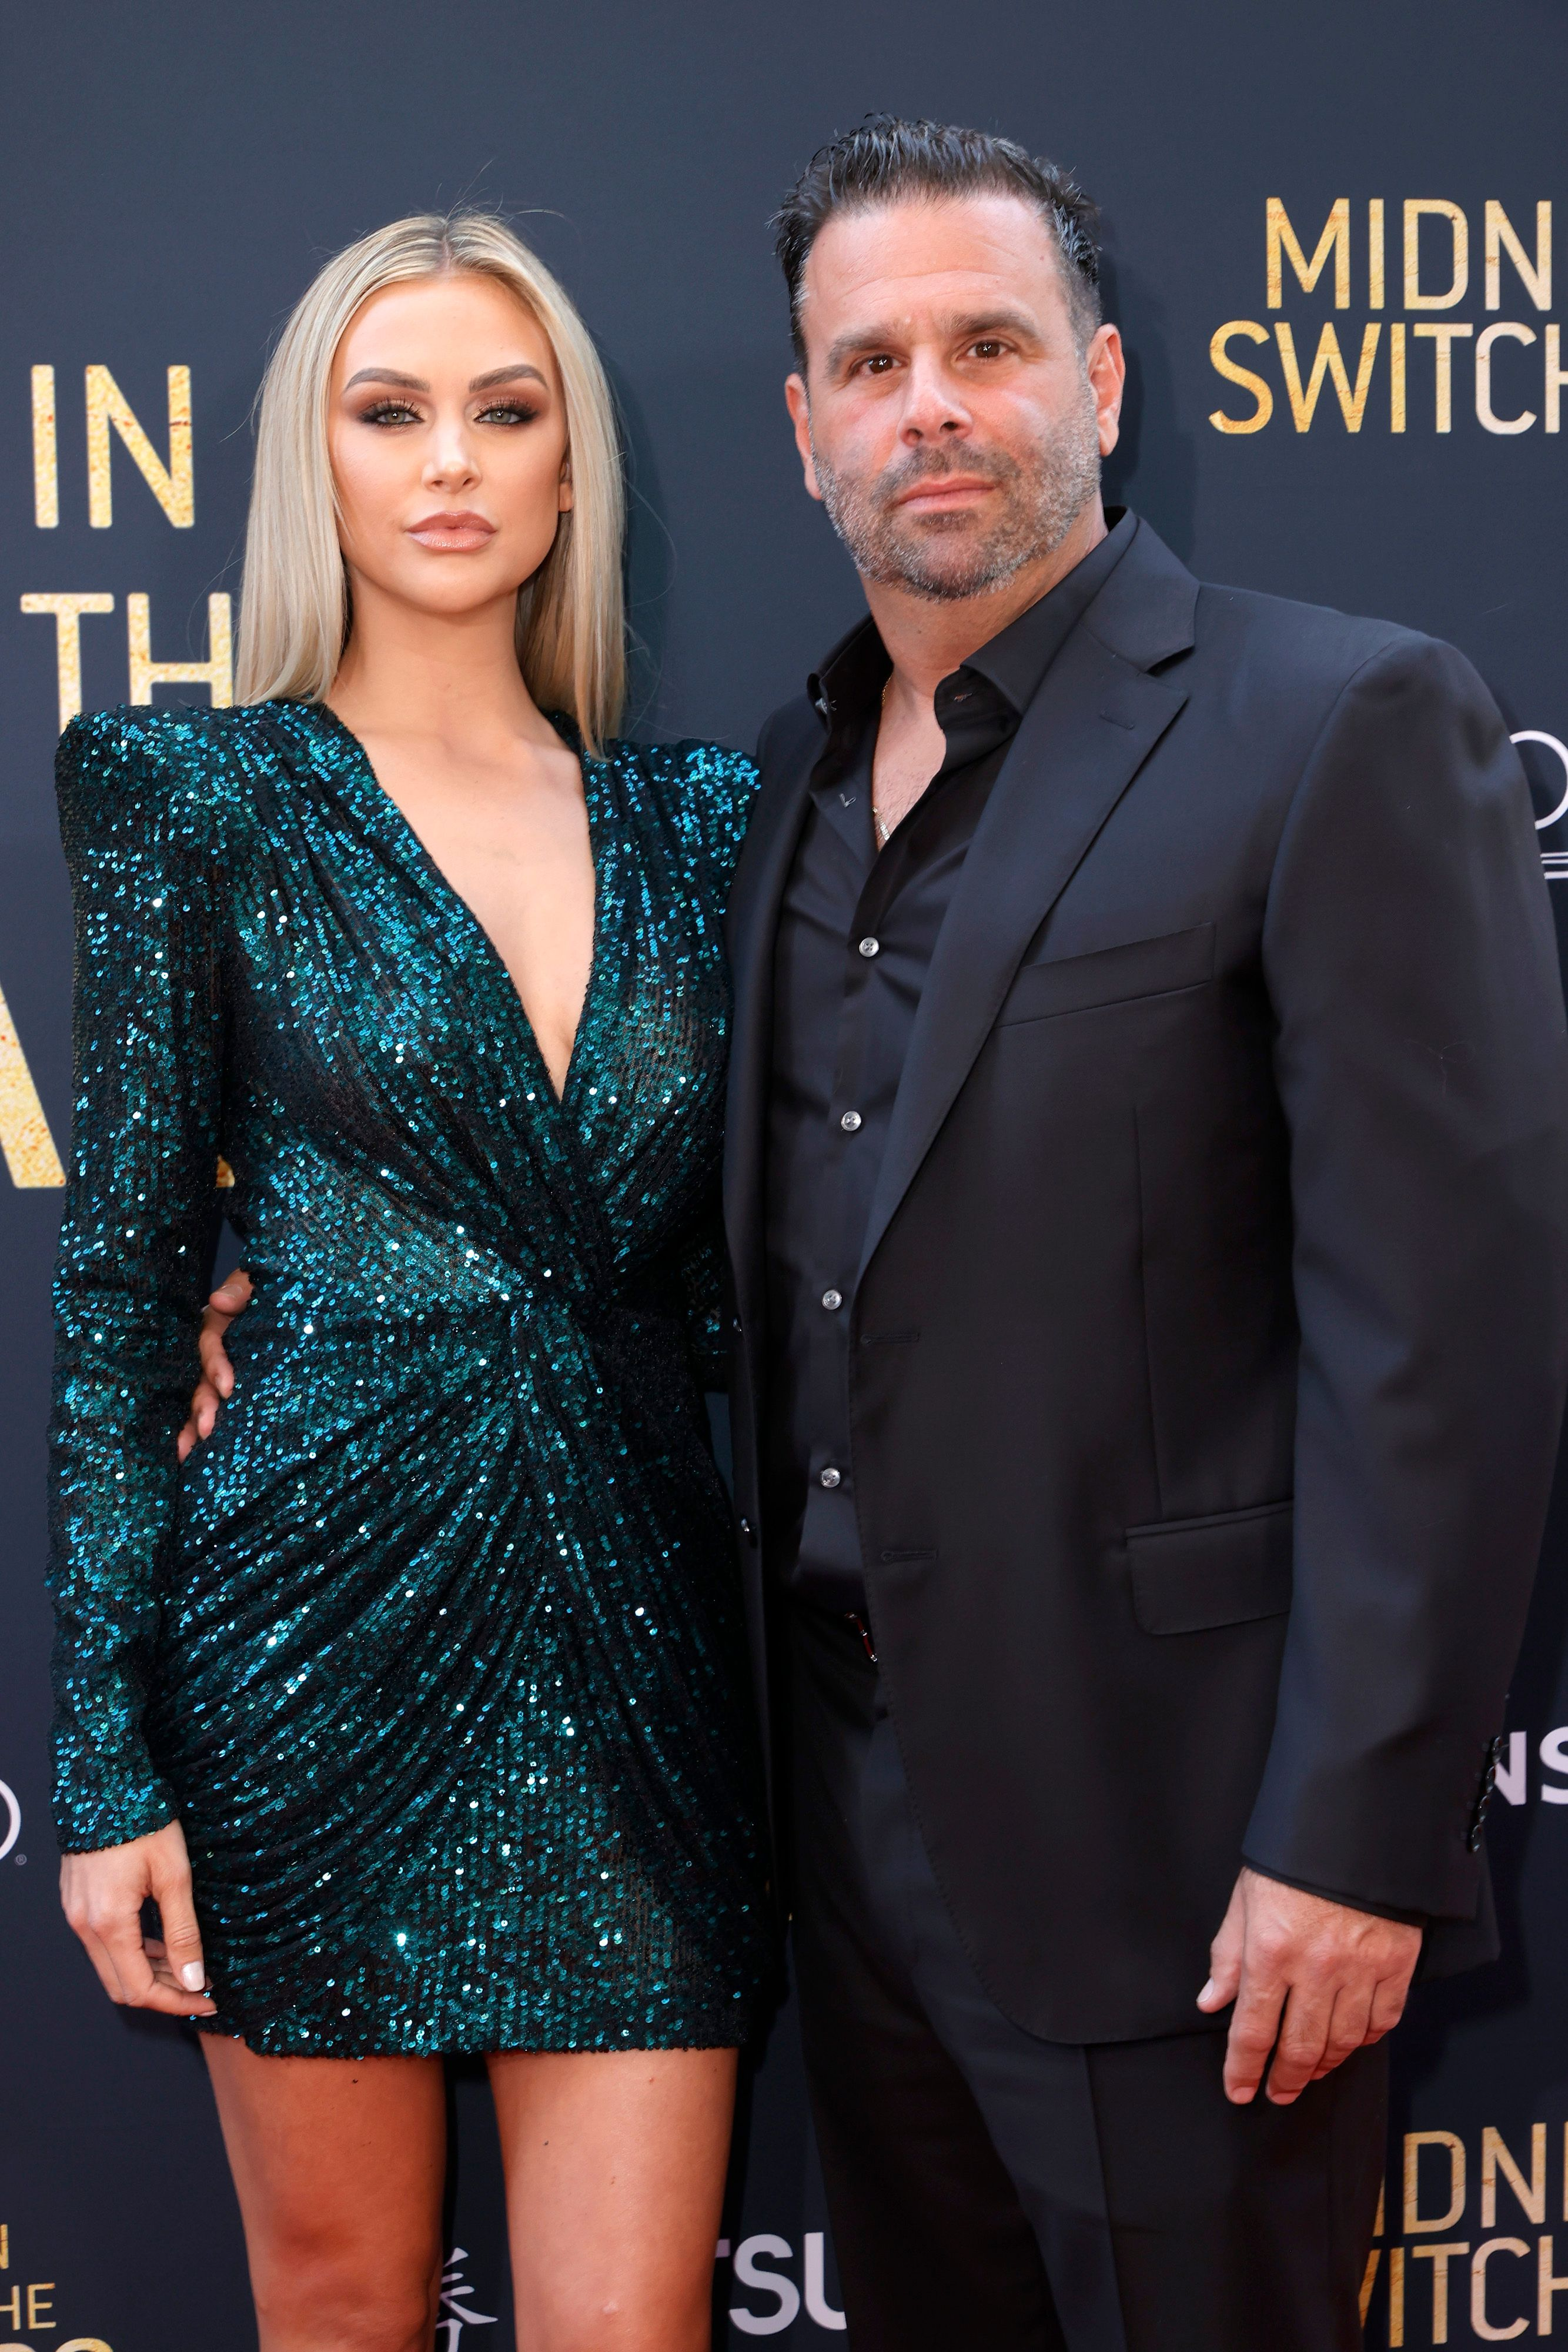 """Lala Kent and Randall Emmett attend the Los Angeles special screening of Lionsgate's """"Midnight in the Switchgrass"""" at Regal LA Live on July 19, 2021 in Los Angeles, California."""